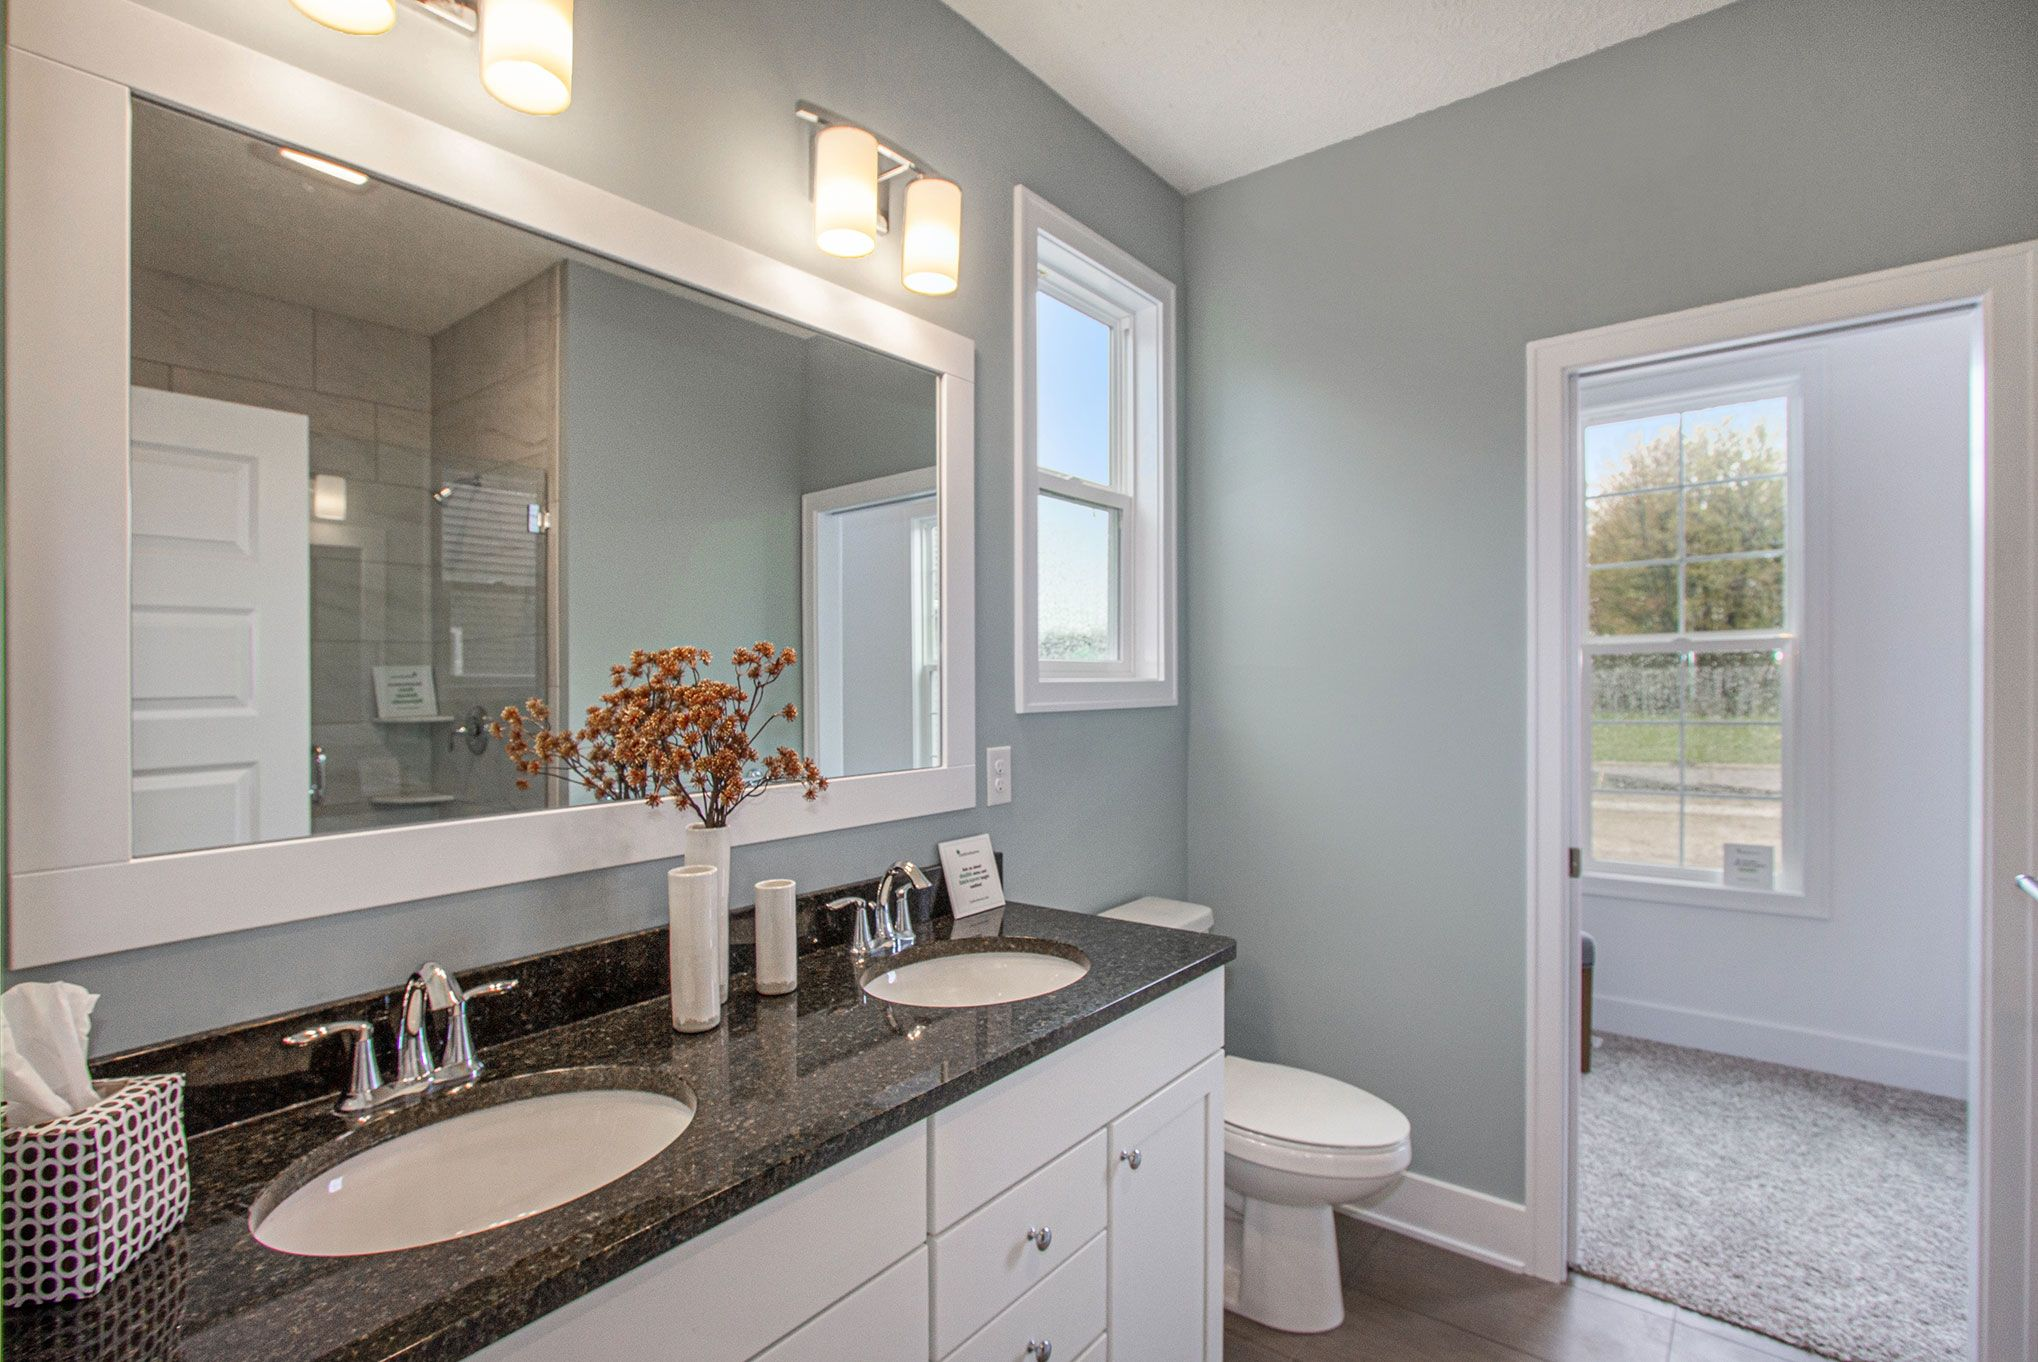 Bathroom featured in The Mayfair By Eastbrook Homes Inc. in Lansing, MI